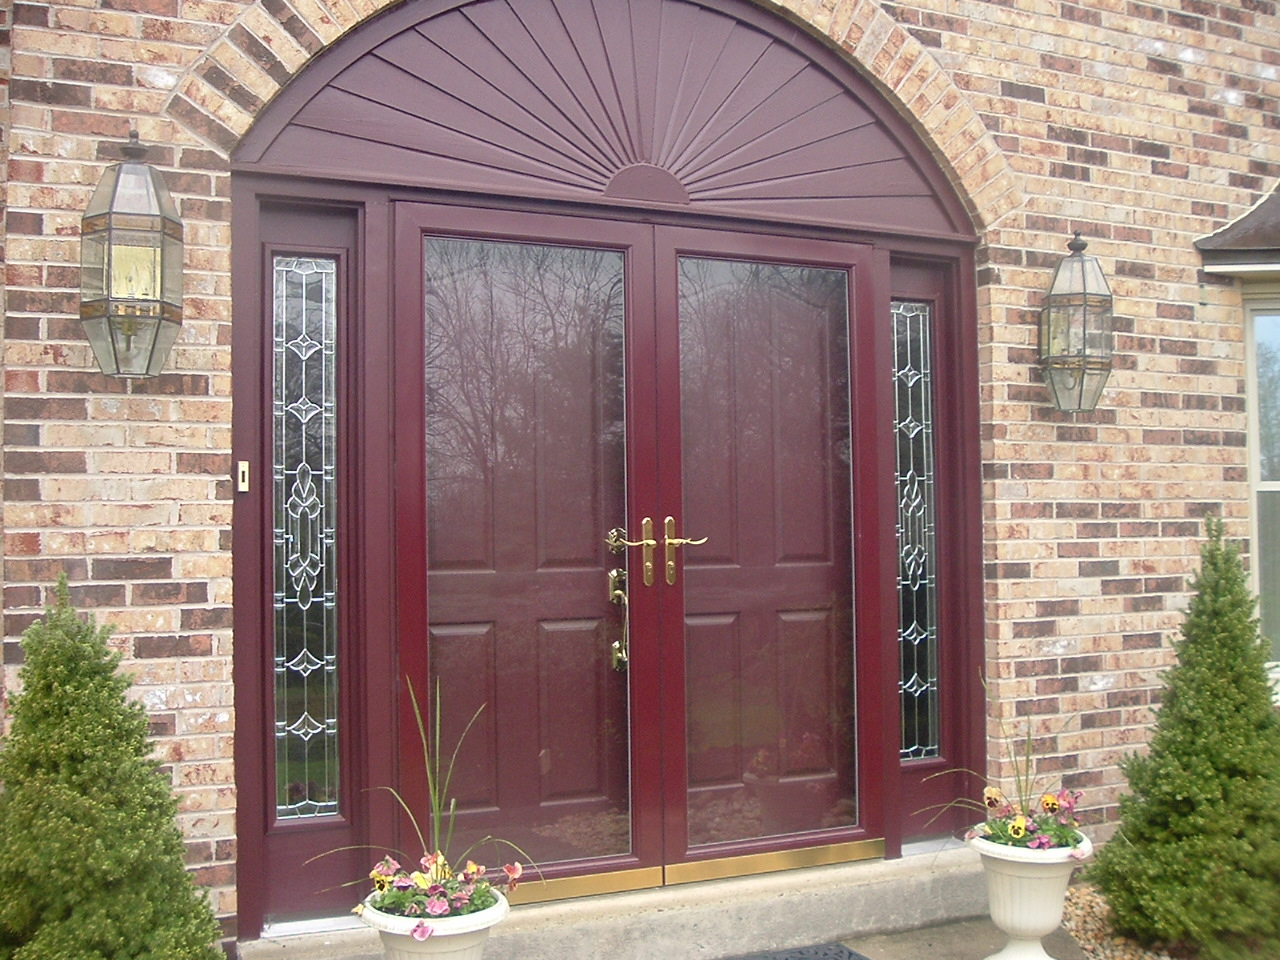 Storm Doors - Kobyco - Replacement Windows, Interior and Exterior ...